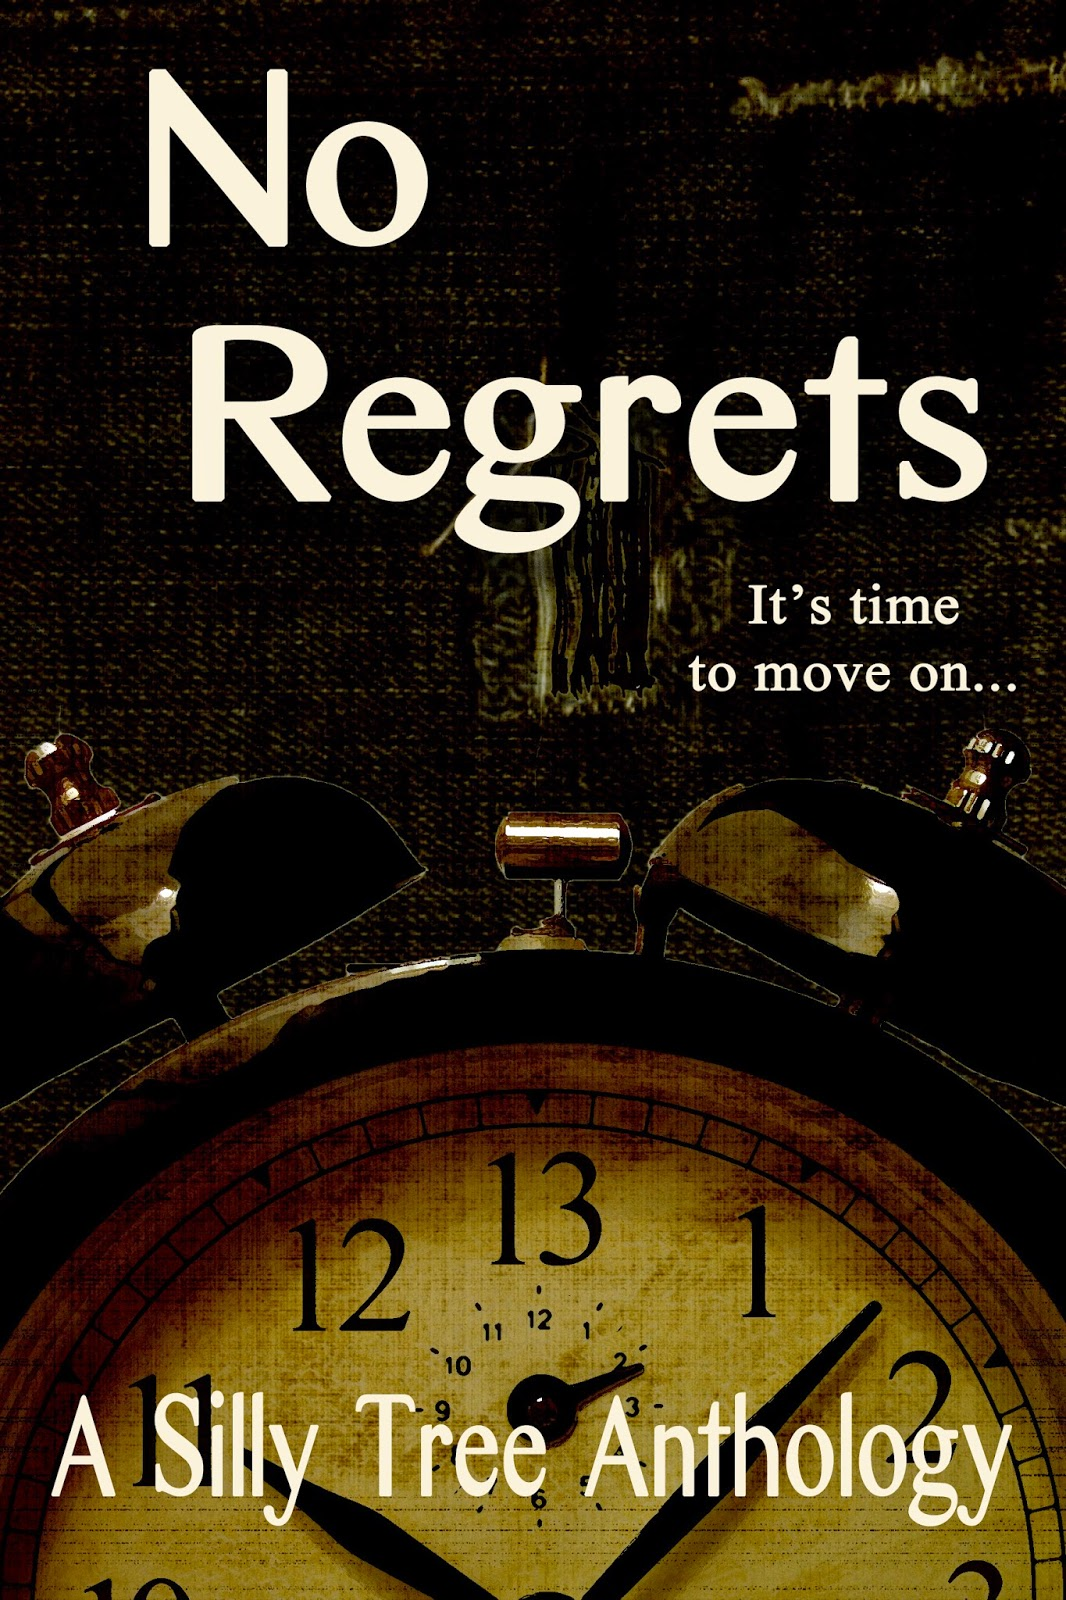 http://www.amazon.com/No-Regrets-Pamela-Gifford-ebook/dp/B00J5SE68A/ref=sr_1_1?s=books&ie=UTF8&qid=1403813820&sr=1-1&keywords=No+Regrets%2C+Silly+Tree